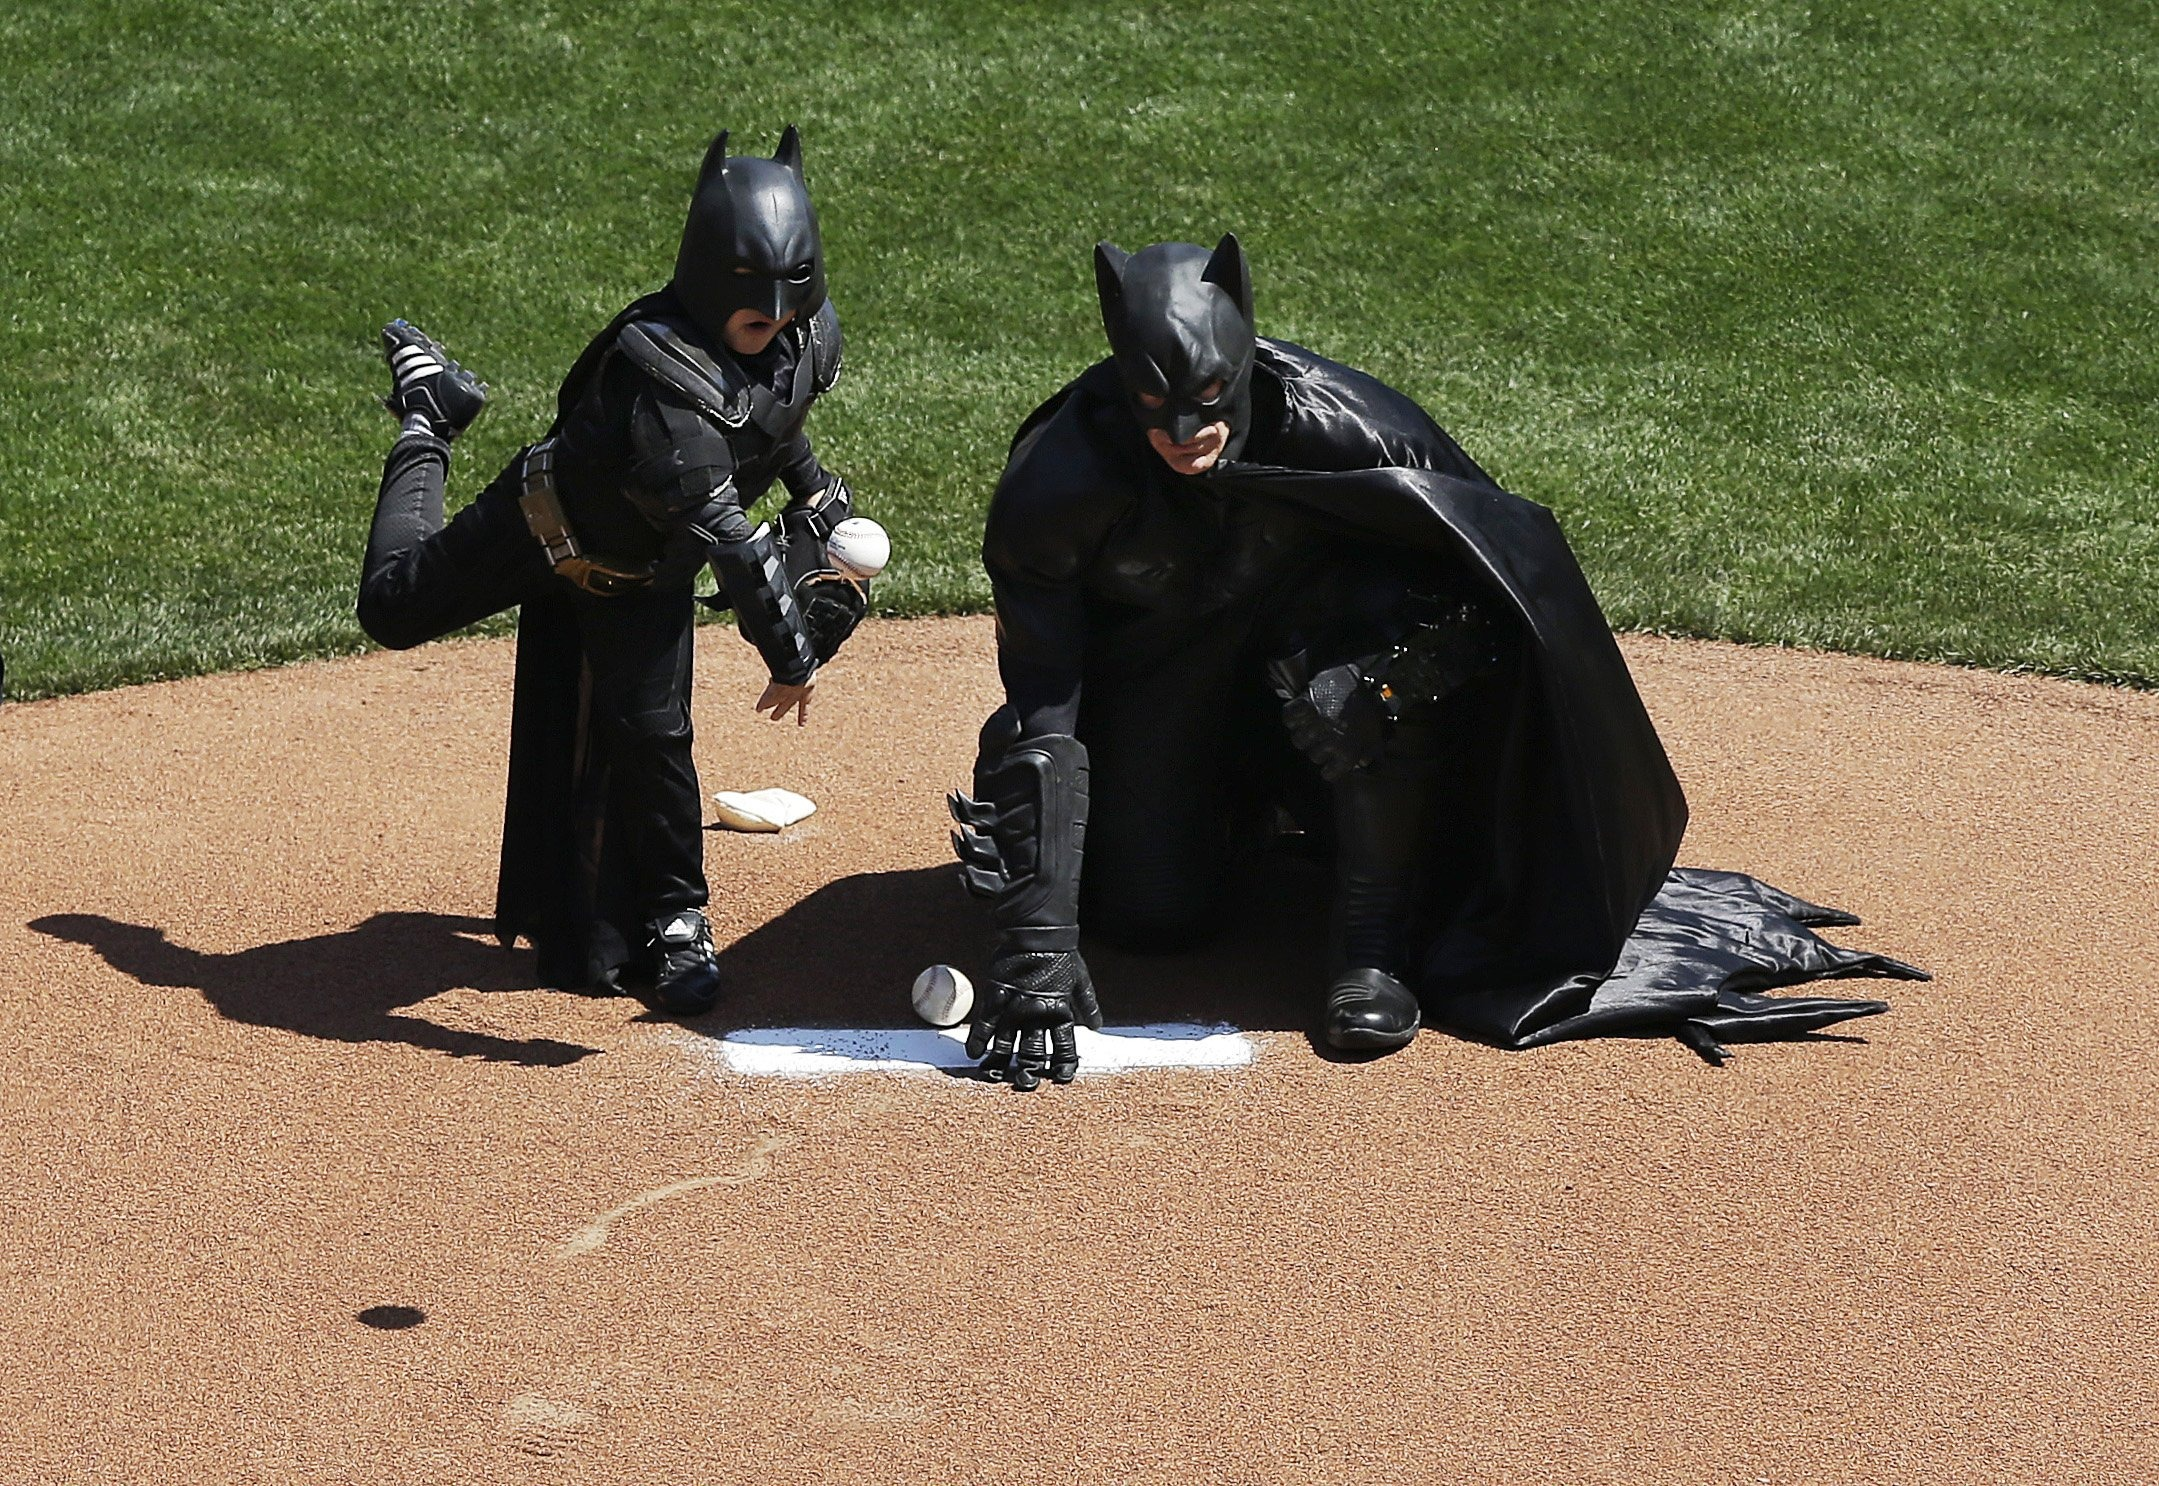 Miles Scott, dressed as Batkid, left, throws the ceremonial first pitch next to Batman before an opening day baseball game between the San Francisco Giants and the Arizona Diamondbacks in San Francisco, April 8, 2014.